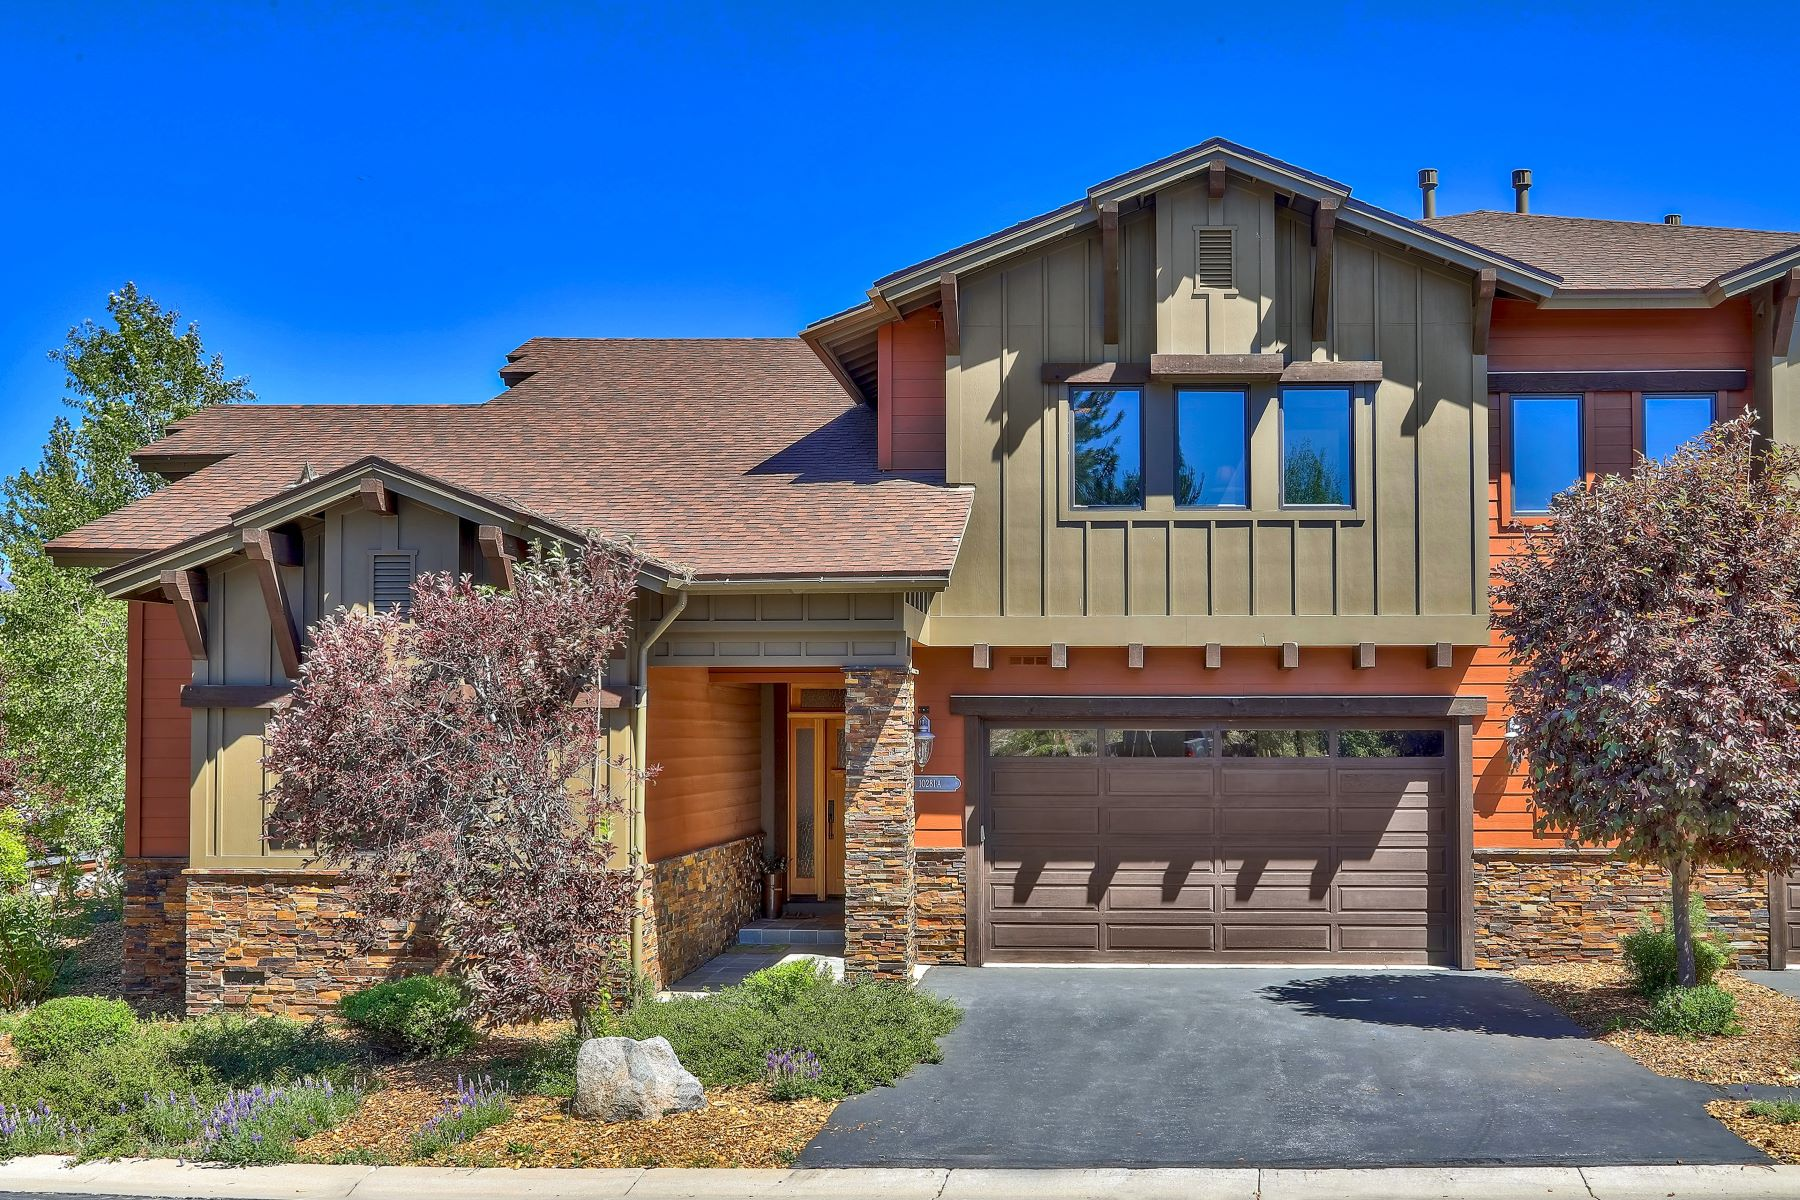 townhouses for Active at Mountain Retreat 10281 Badger Ln #A Truckee, California 96161 United States